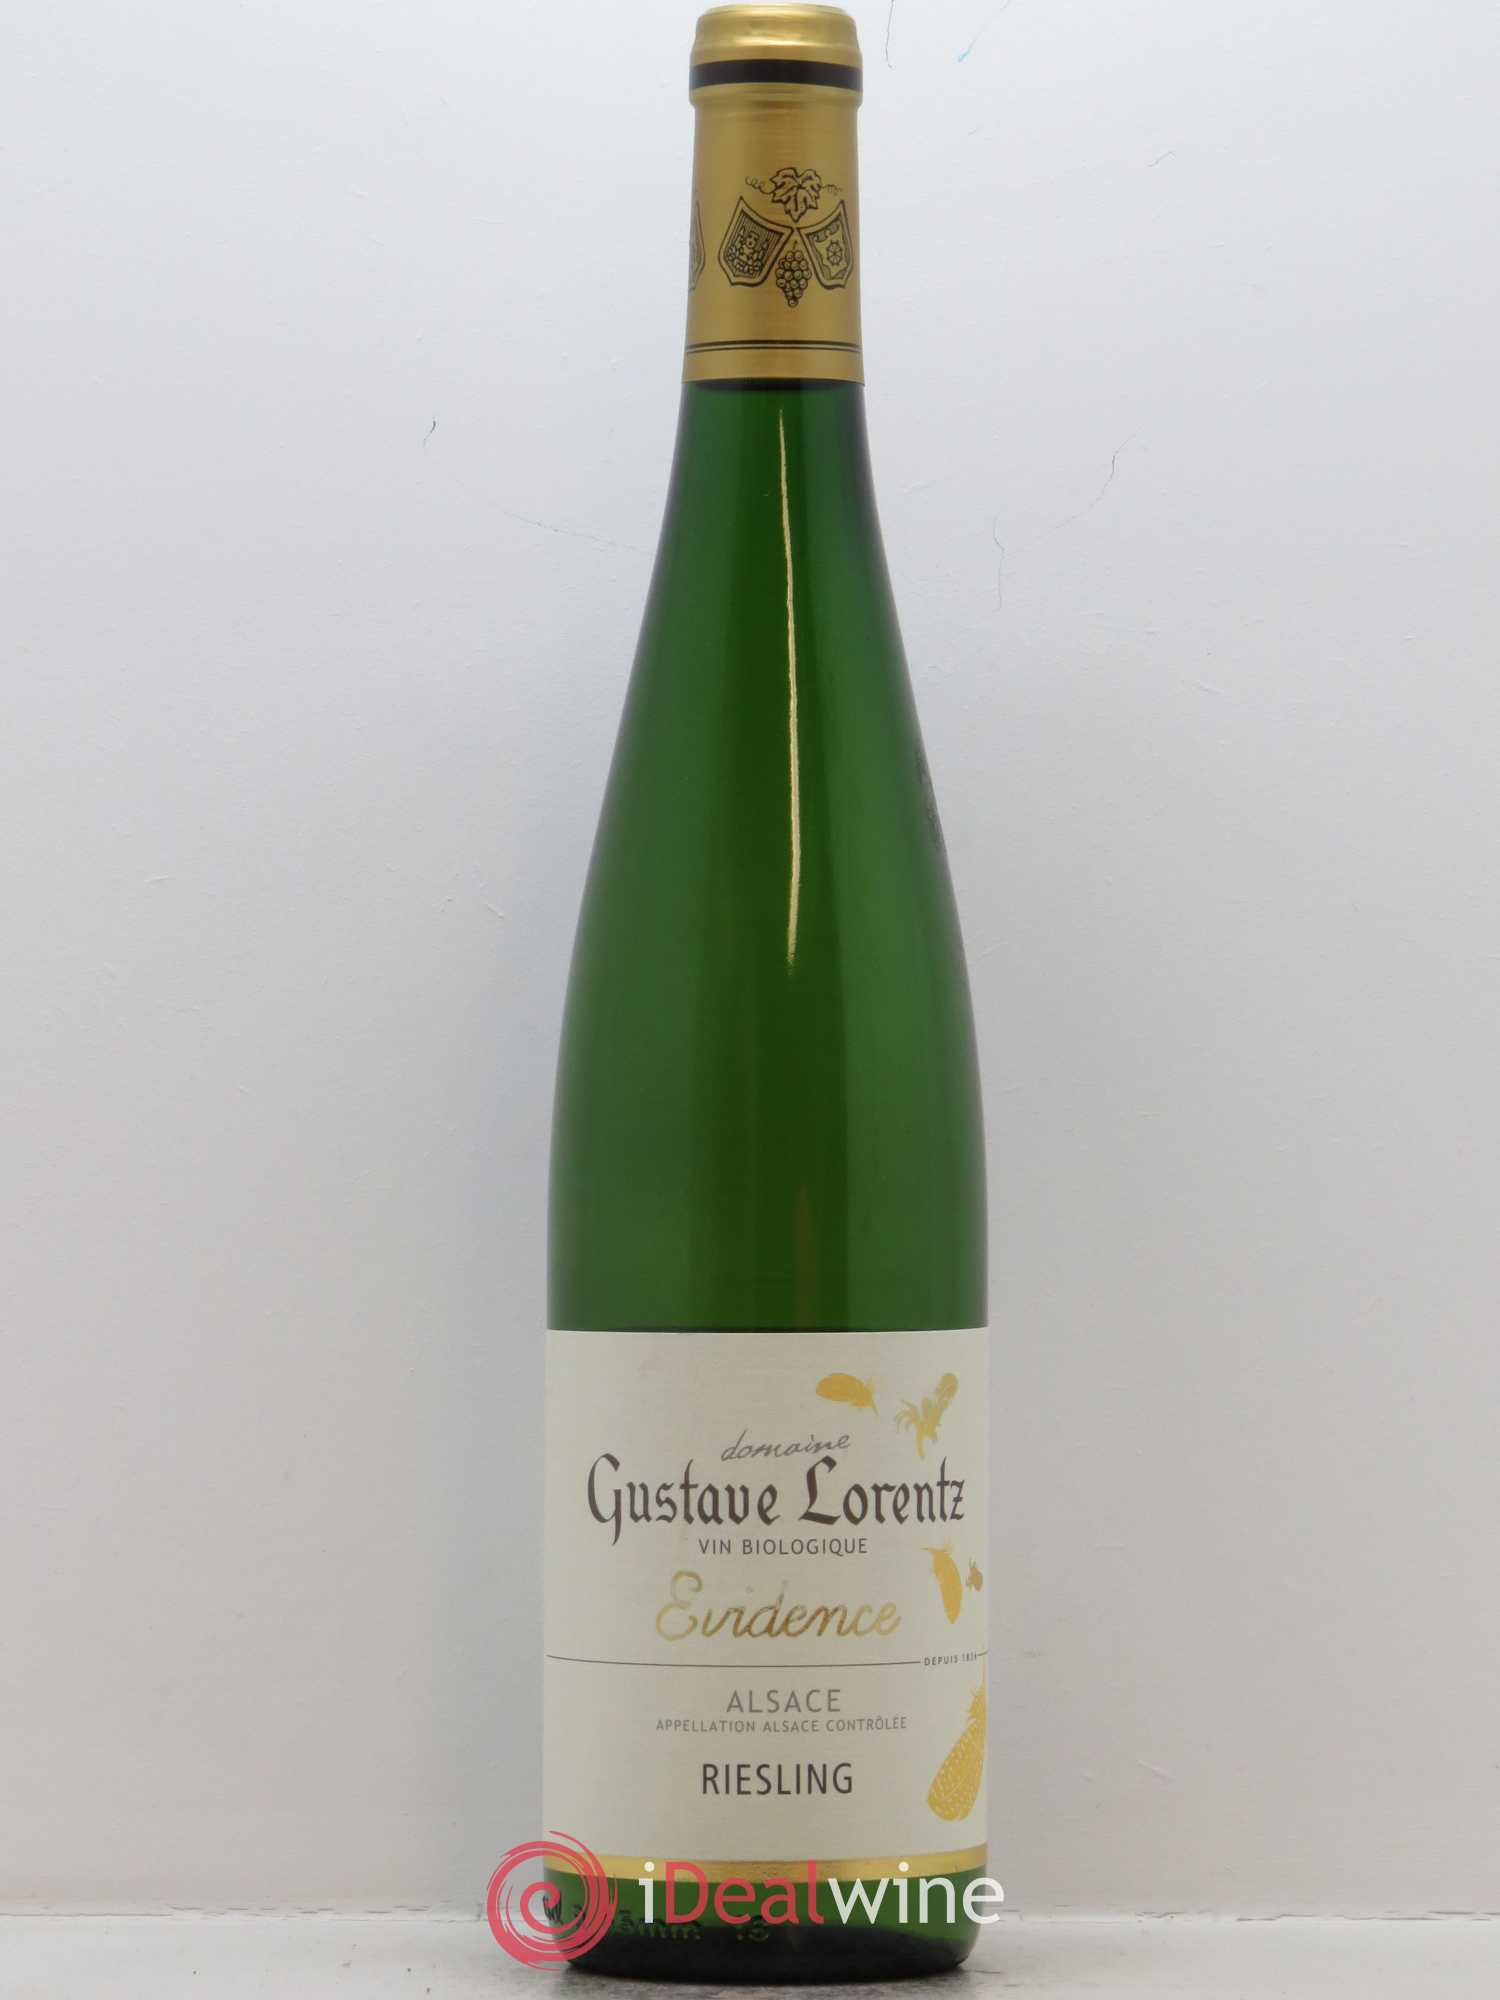 Riesling Evidence Gustave Lorentz  2016 - Lot de 1 Bouteille